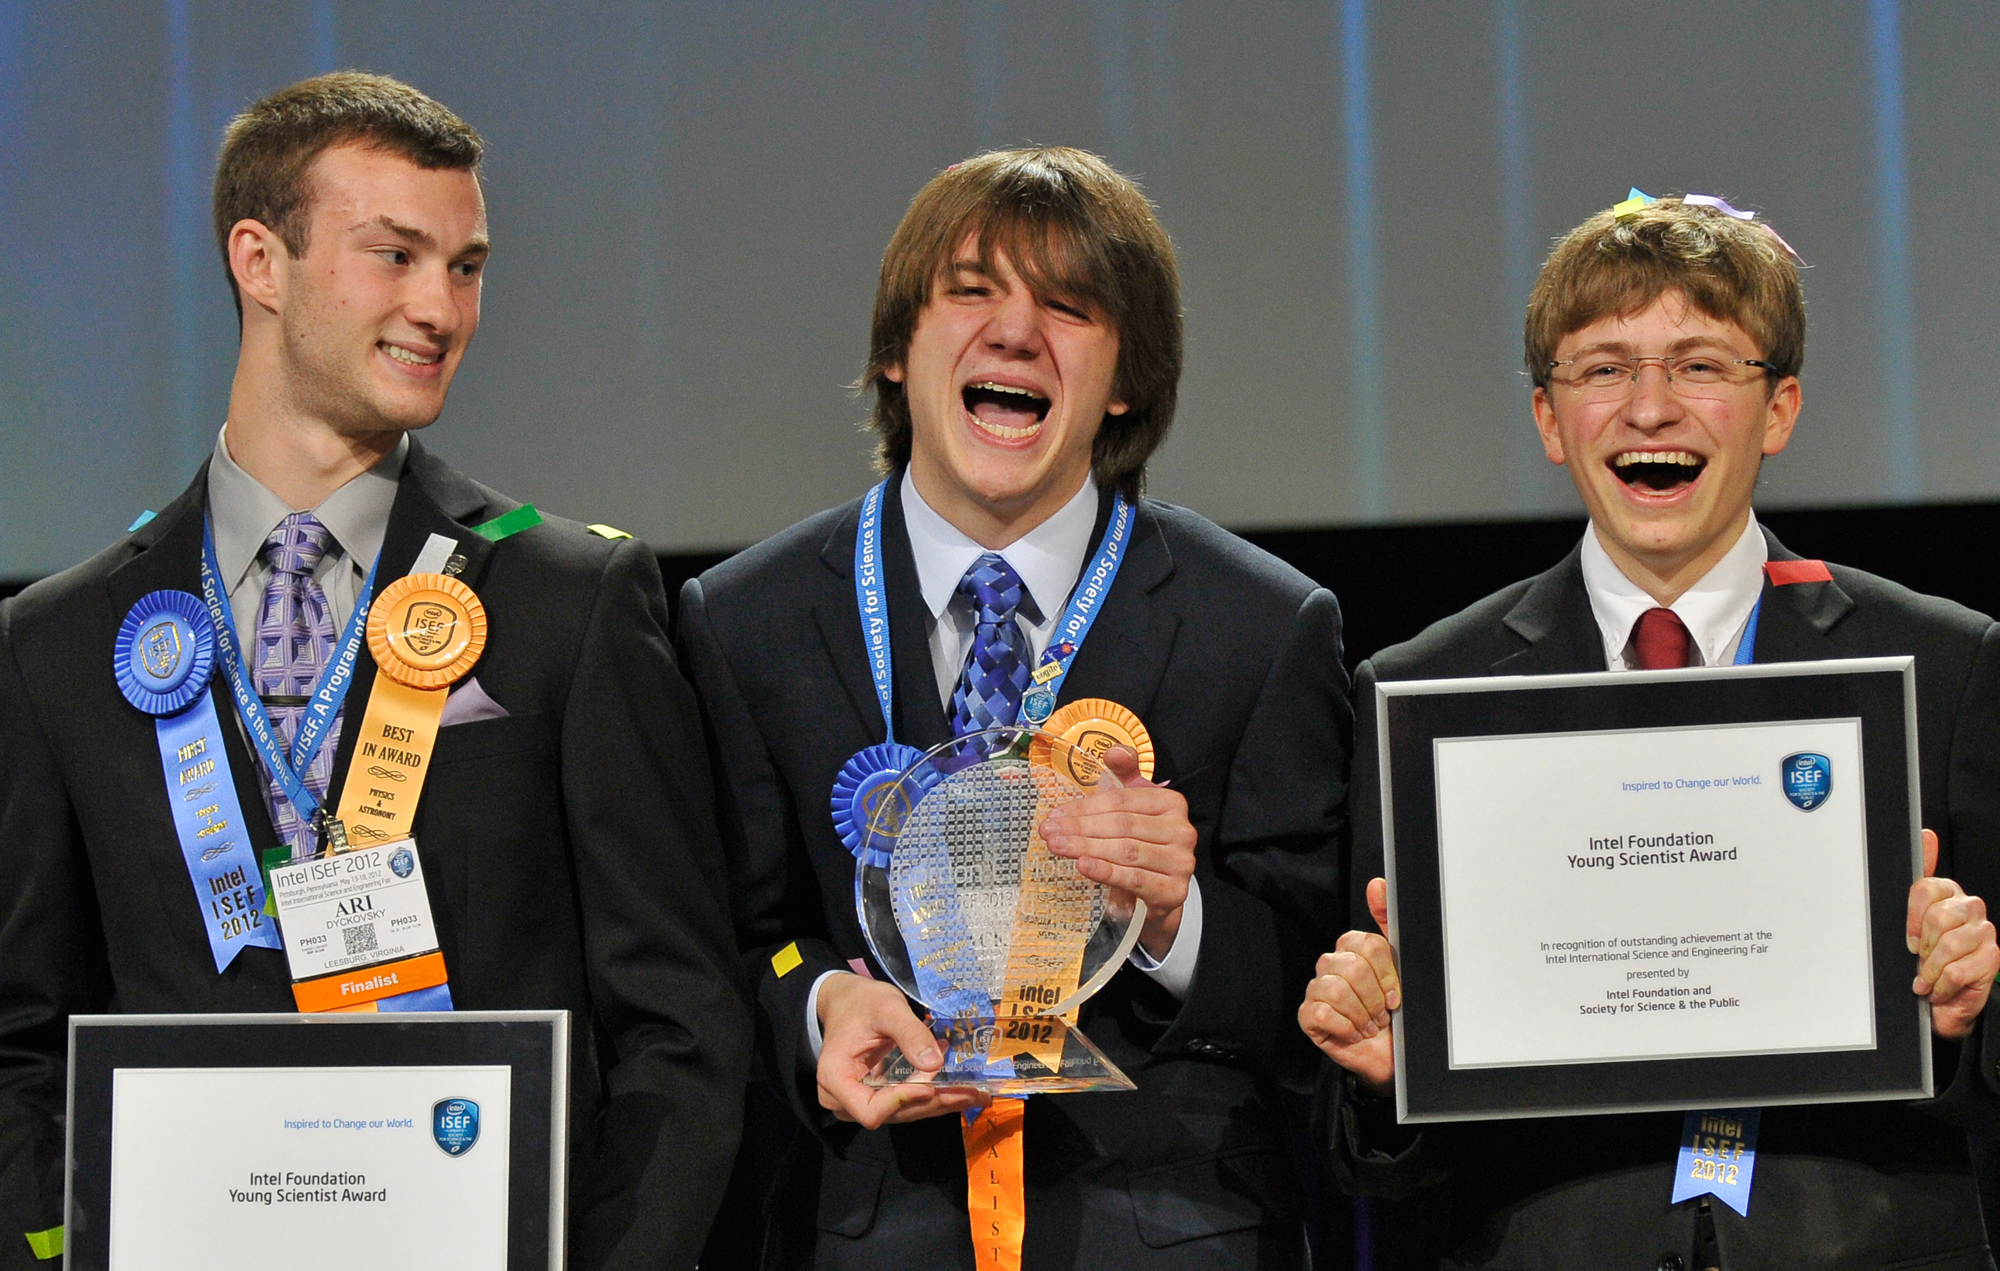 ISEF2012-Top-Three-Winners.jpg